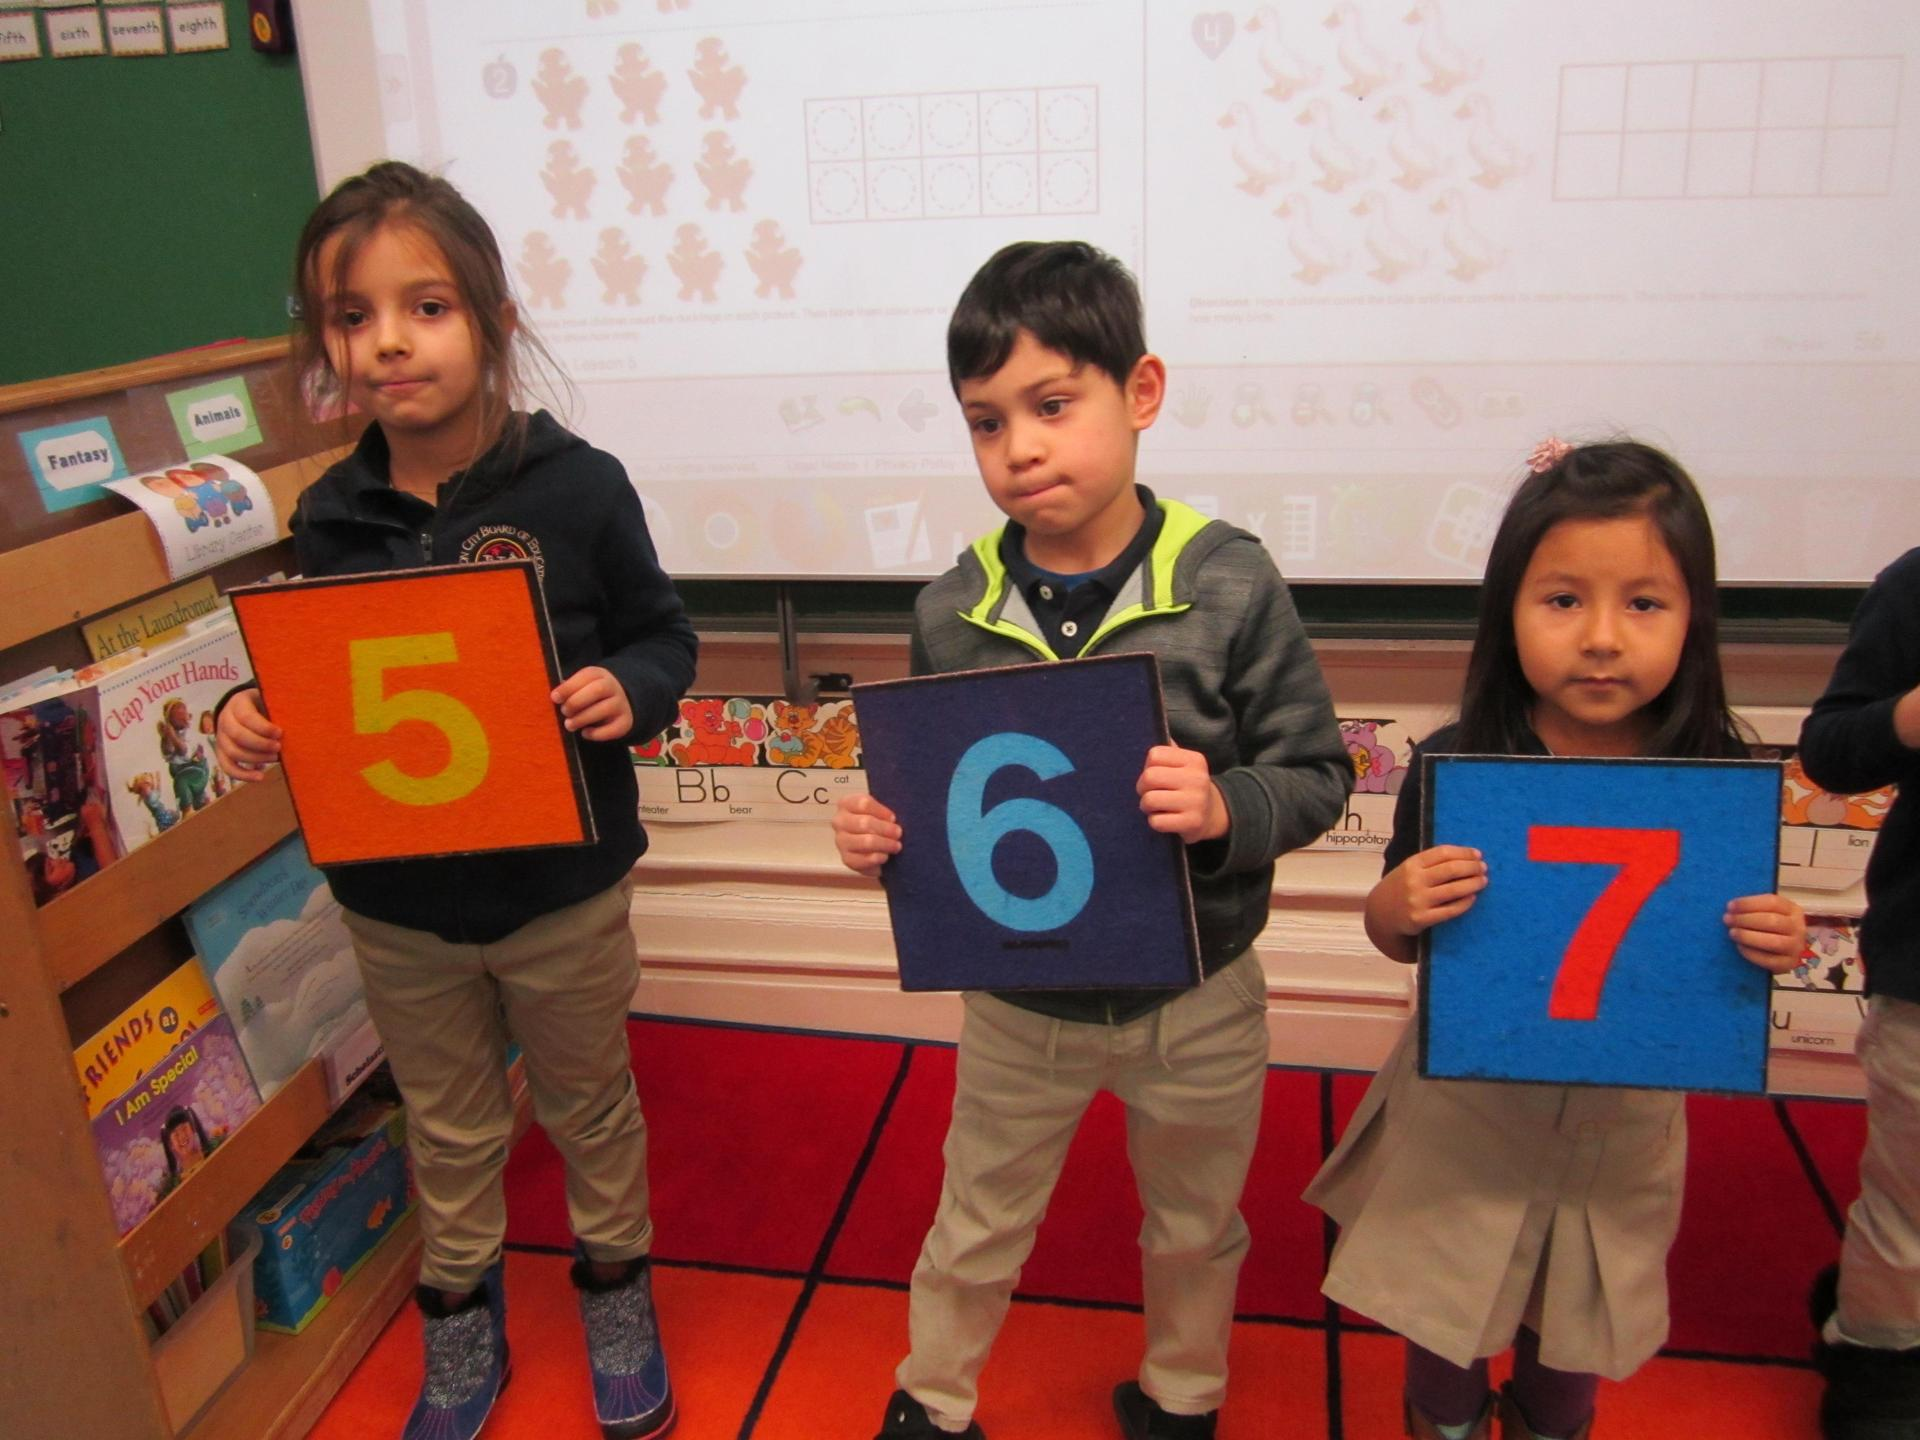 boys and girls holding number 5-7